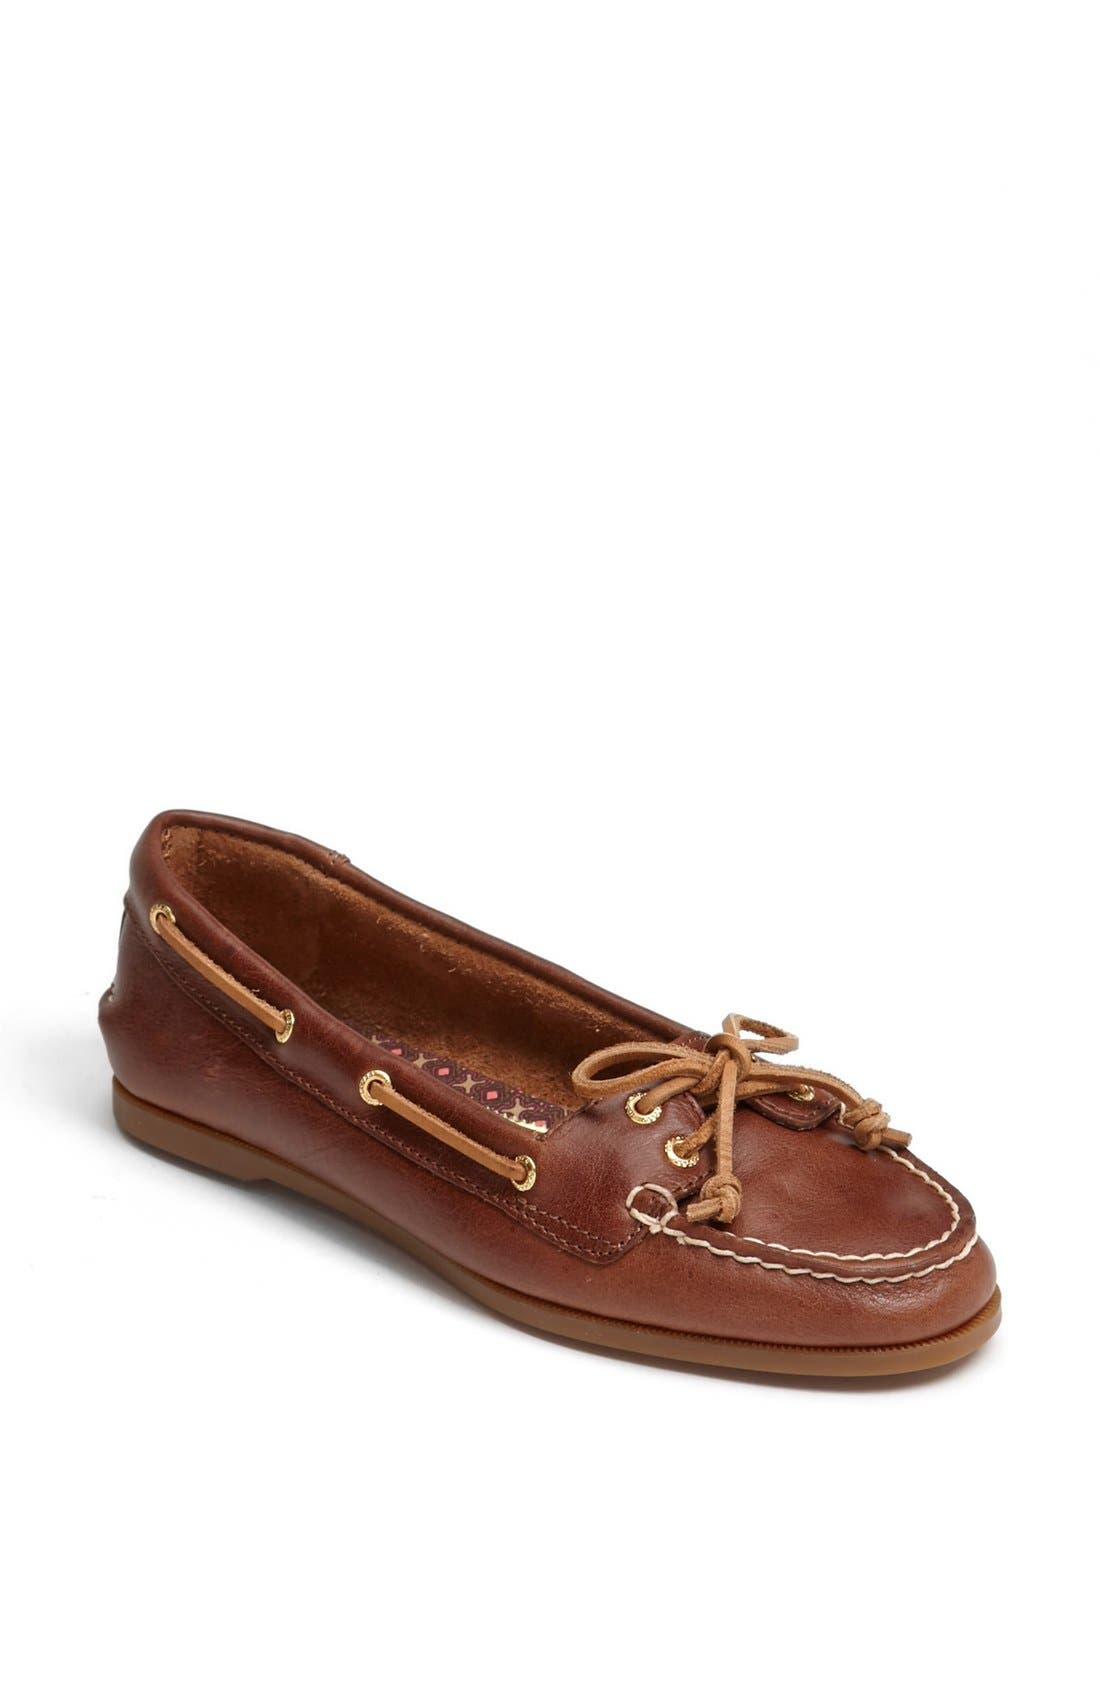 Alternate Image 1 Selected - Sperry 'Audrey' Boat Shoe